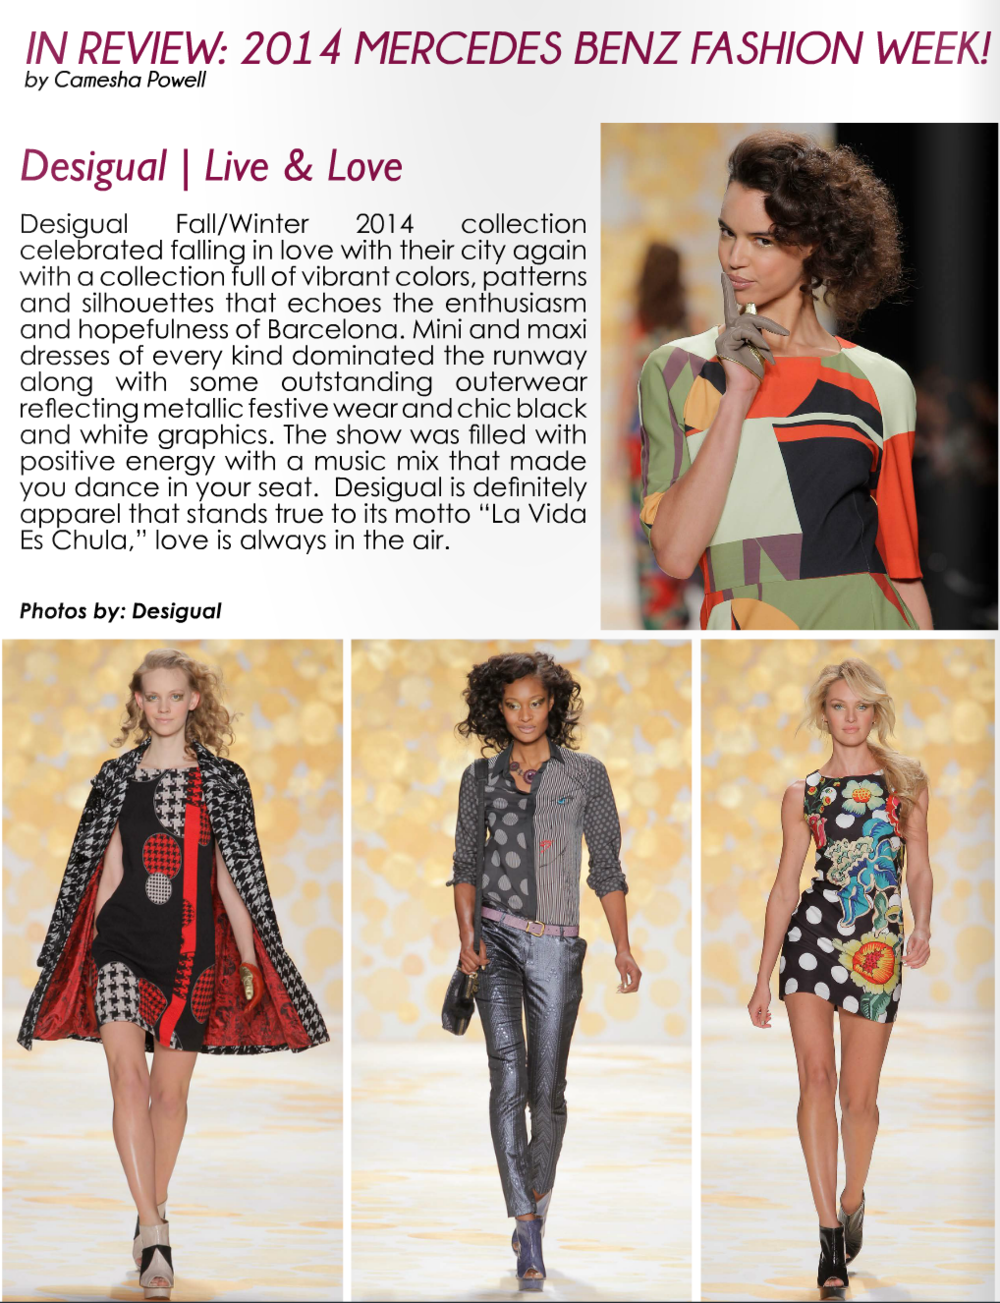 Mercedes Benz Fashion Week Review (pages 18-41)     Read article...